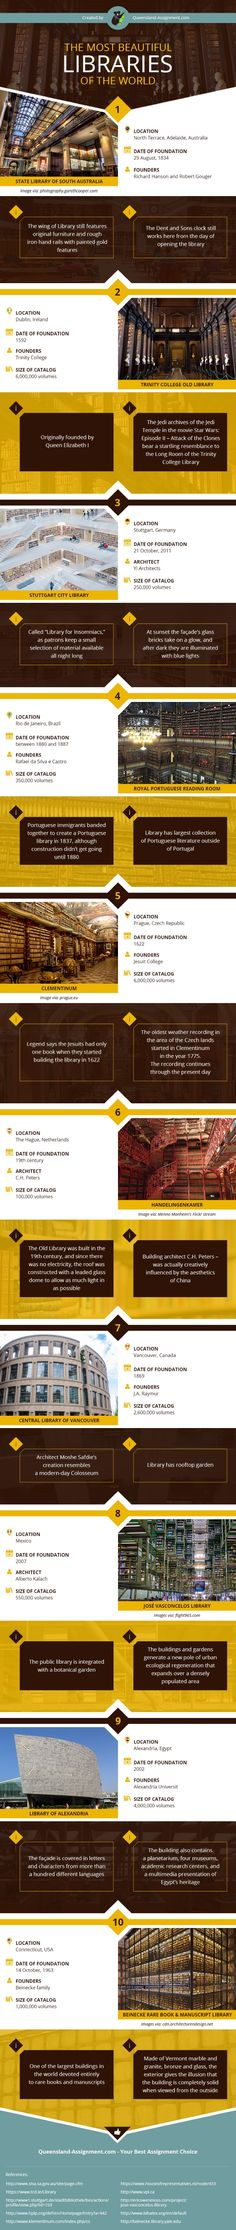 The most beautiful libraries in the world (infographic)